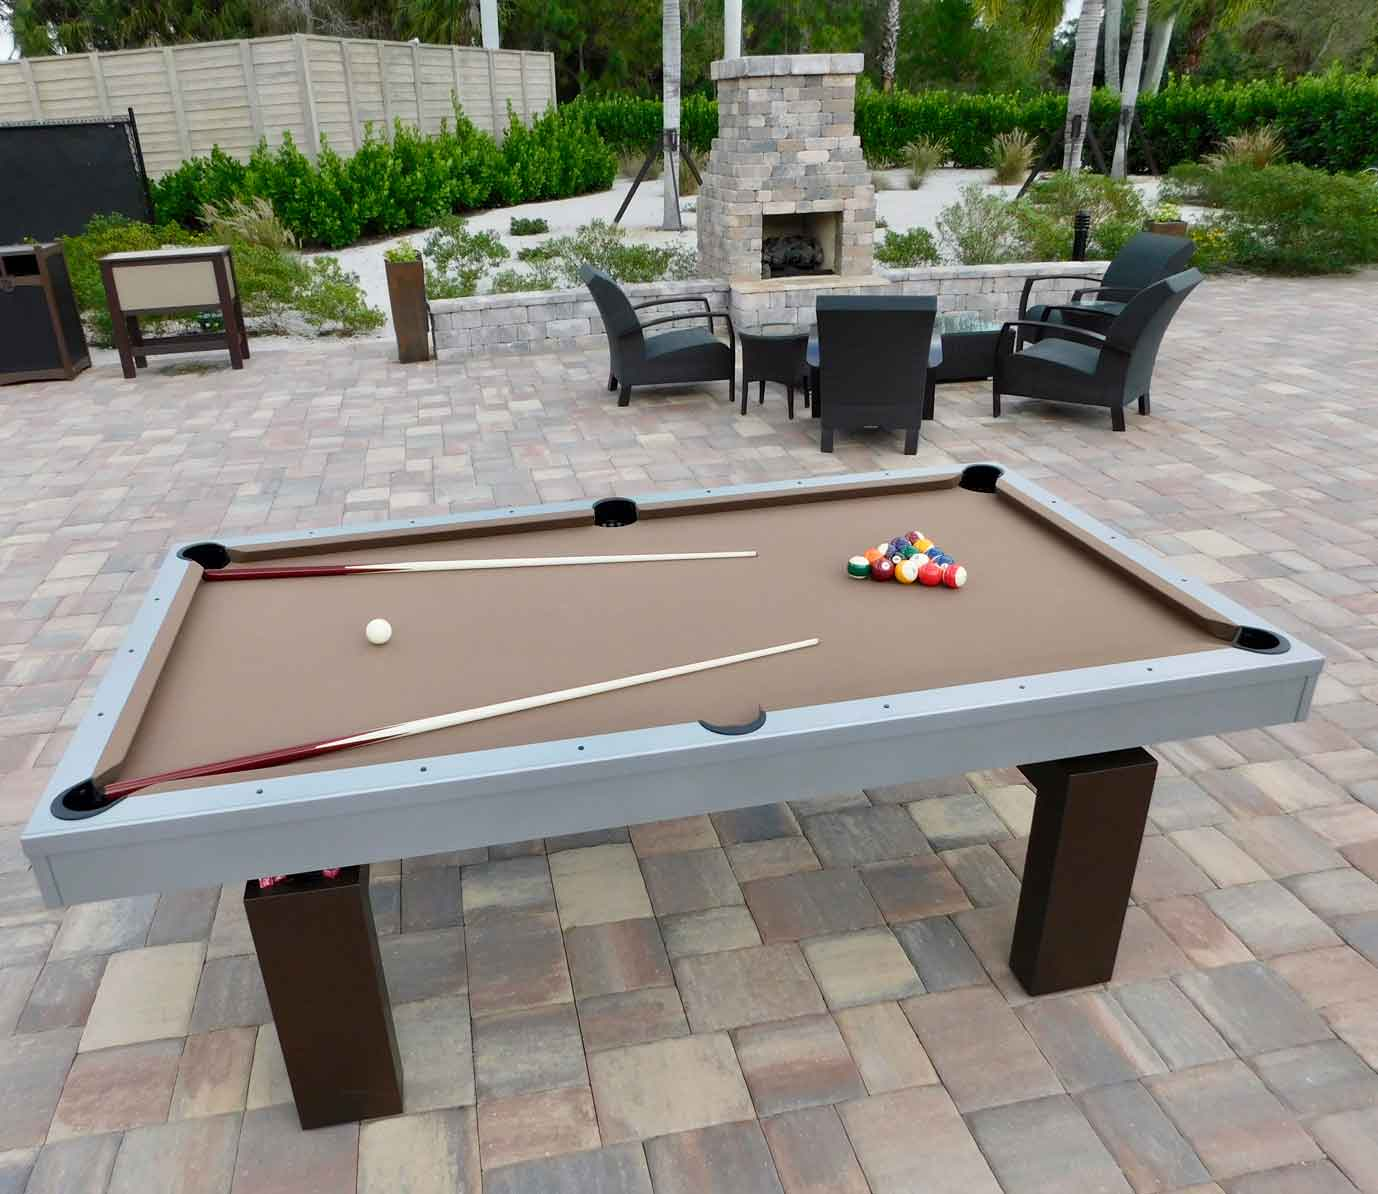 South Beach, custom outdoor pool table, creates a fun and relaxing outdoor living space